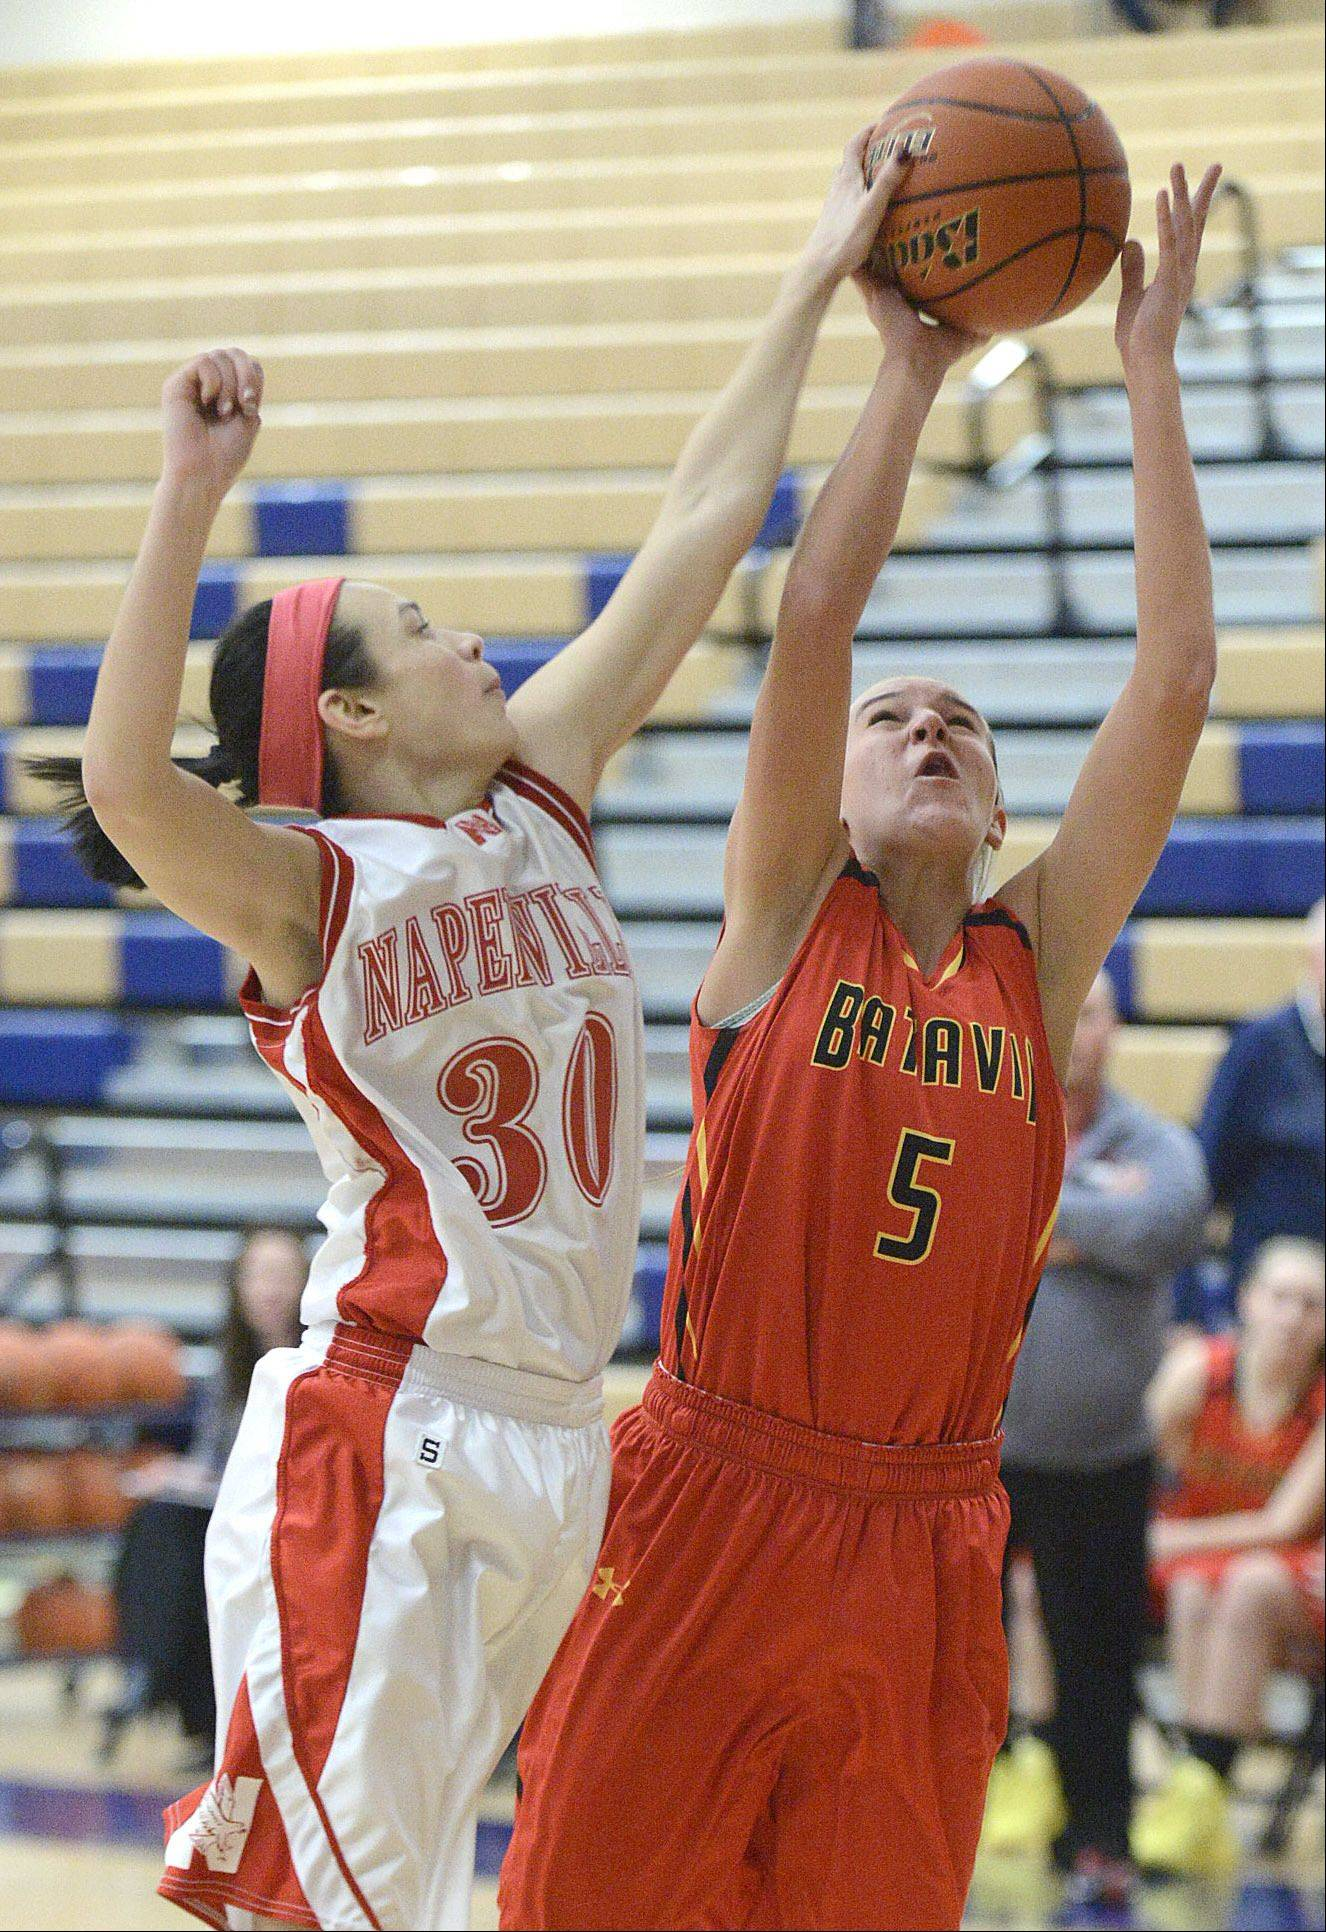 Naperville Central's Shannon Ryan knocks the ball from the hands of Batavia's Liza Fruendt, denying her a basket in the third quarter.